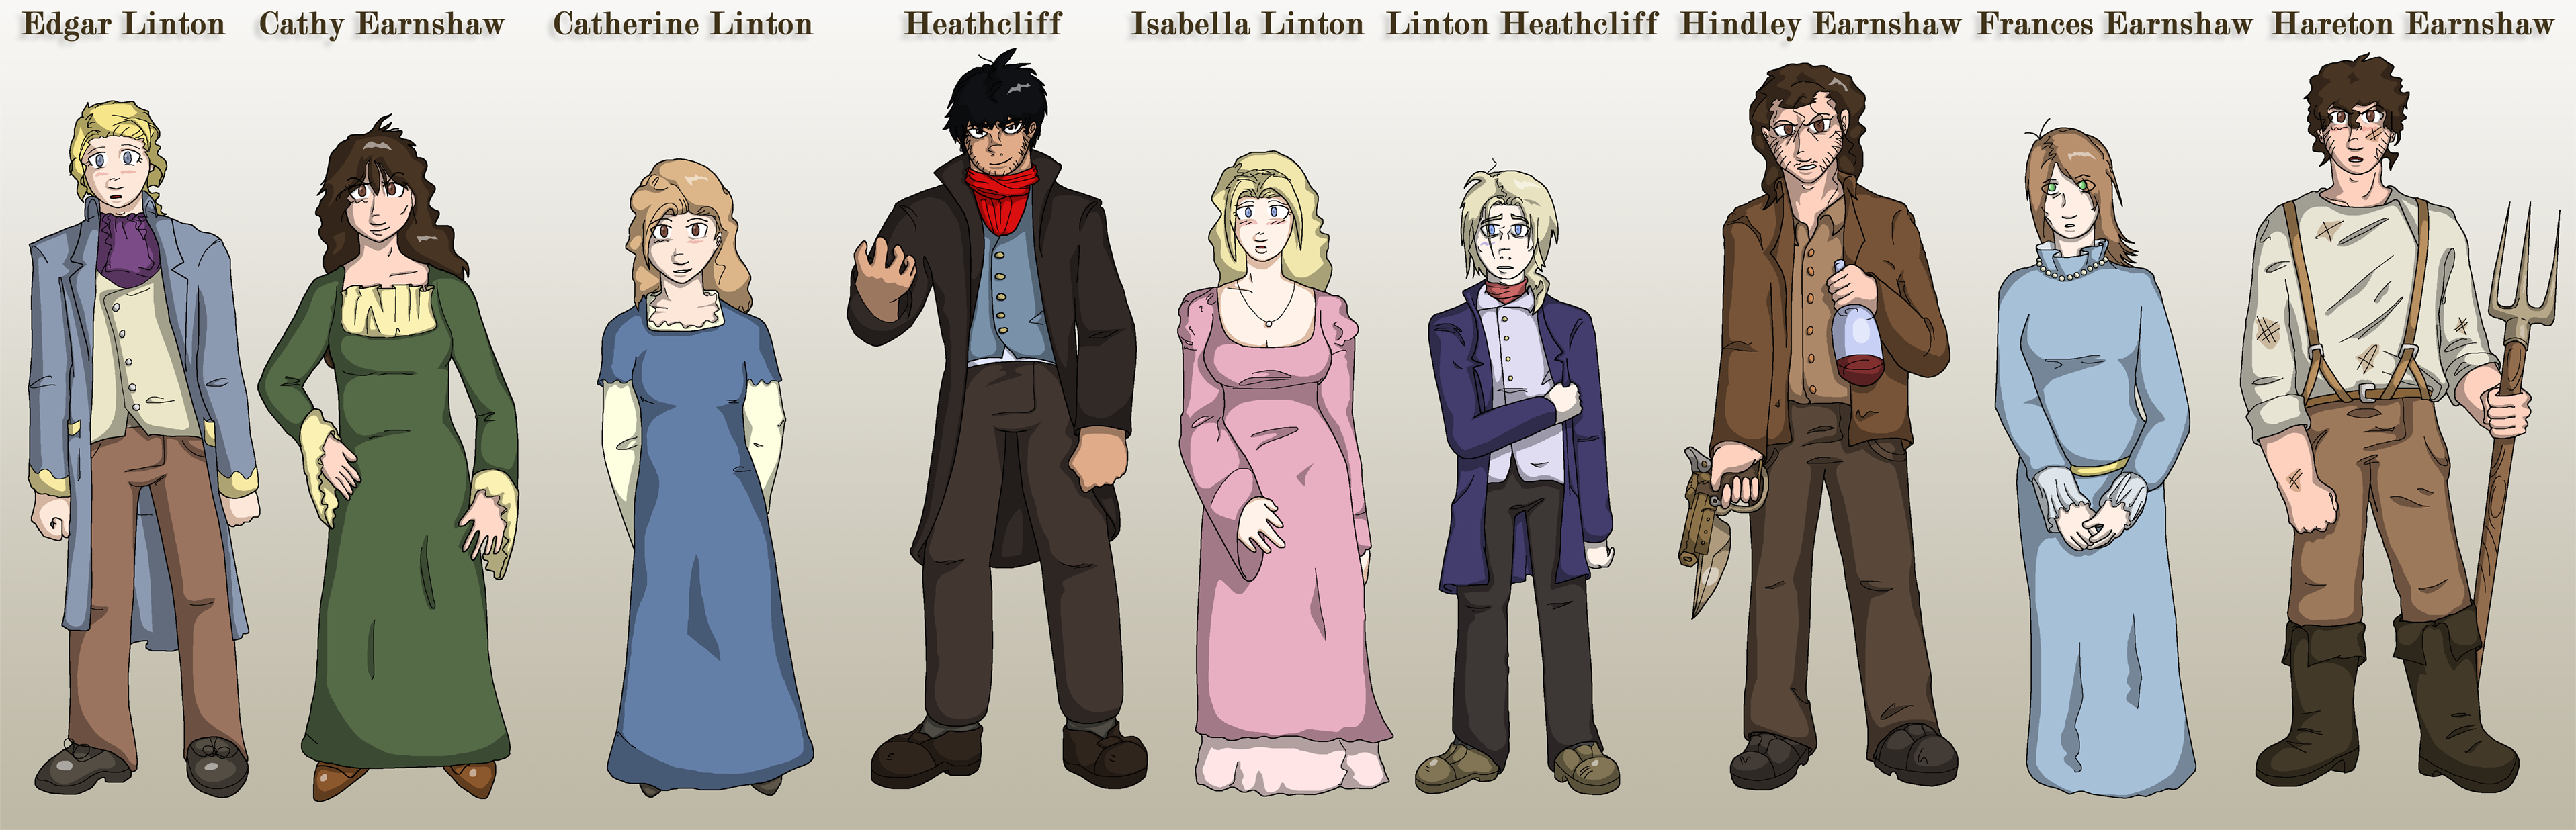 wuthering heights character designs by sregan on wuthering heights character designs by sregan wuthering heights character designs by sregan